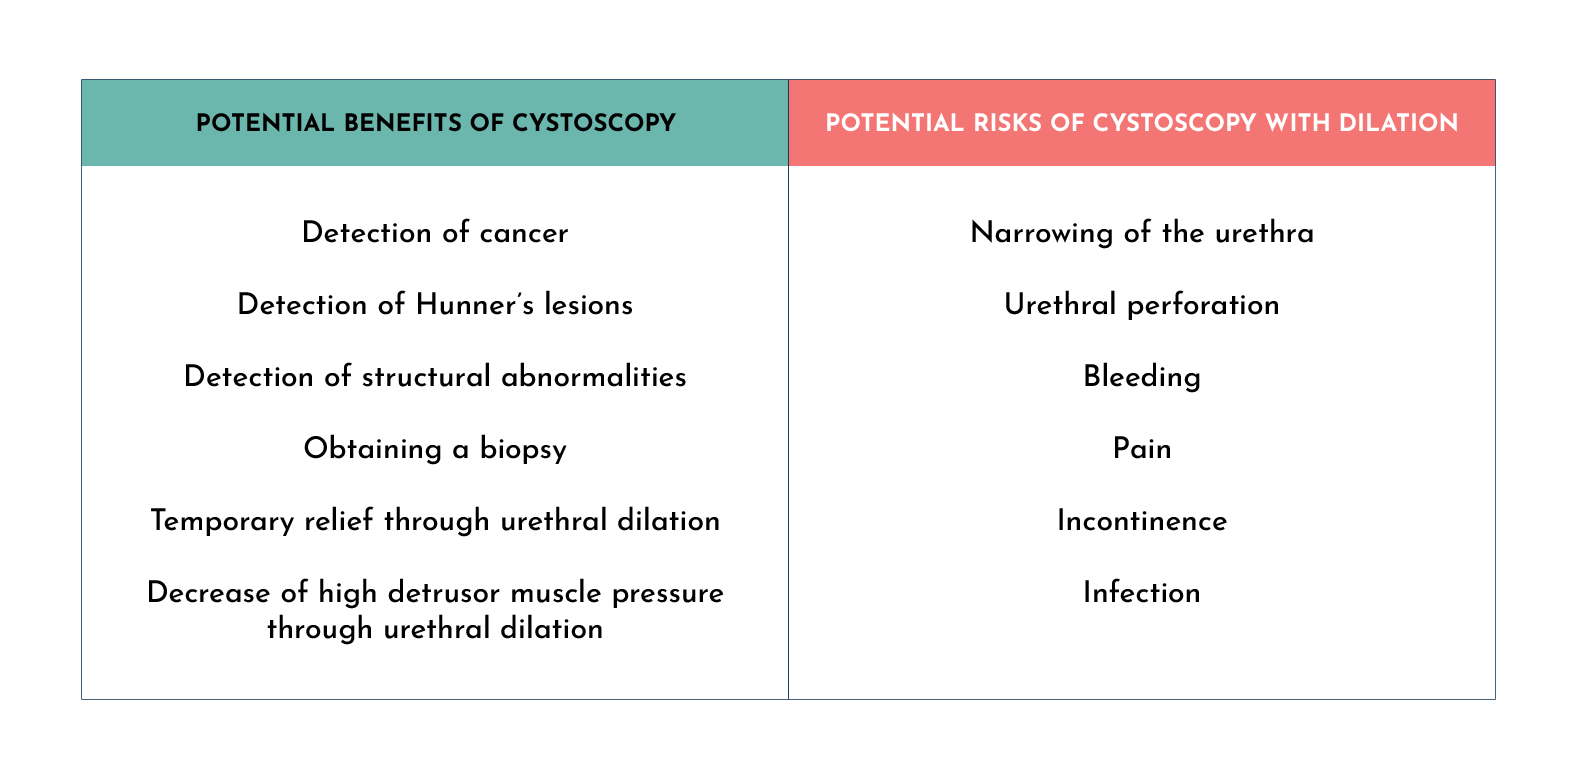 Cystoscopy and dilation benefits and risks